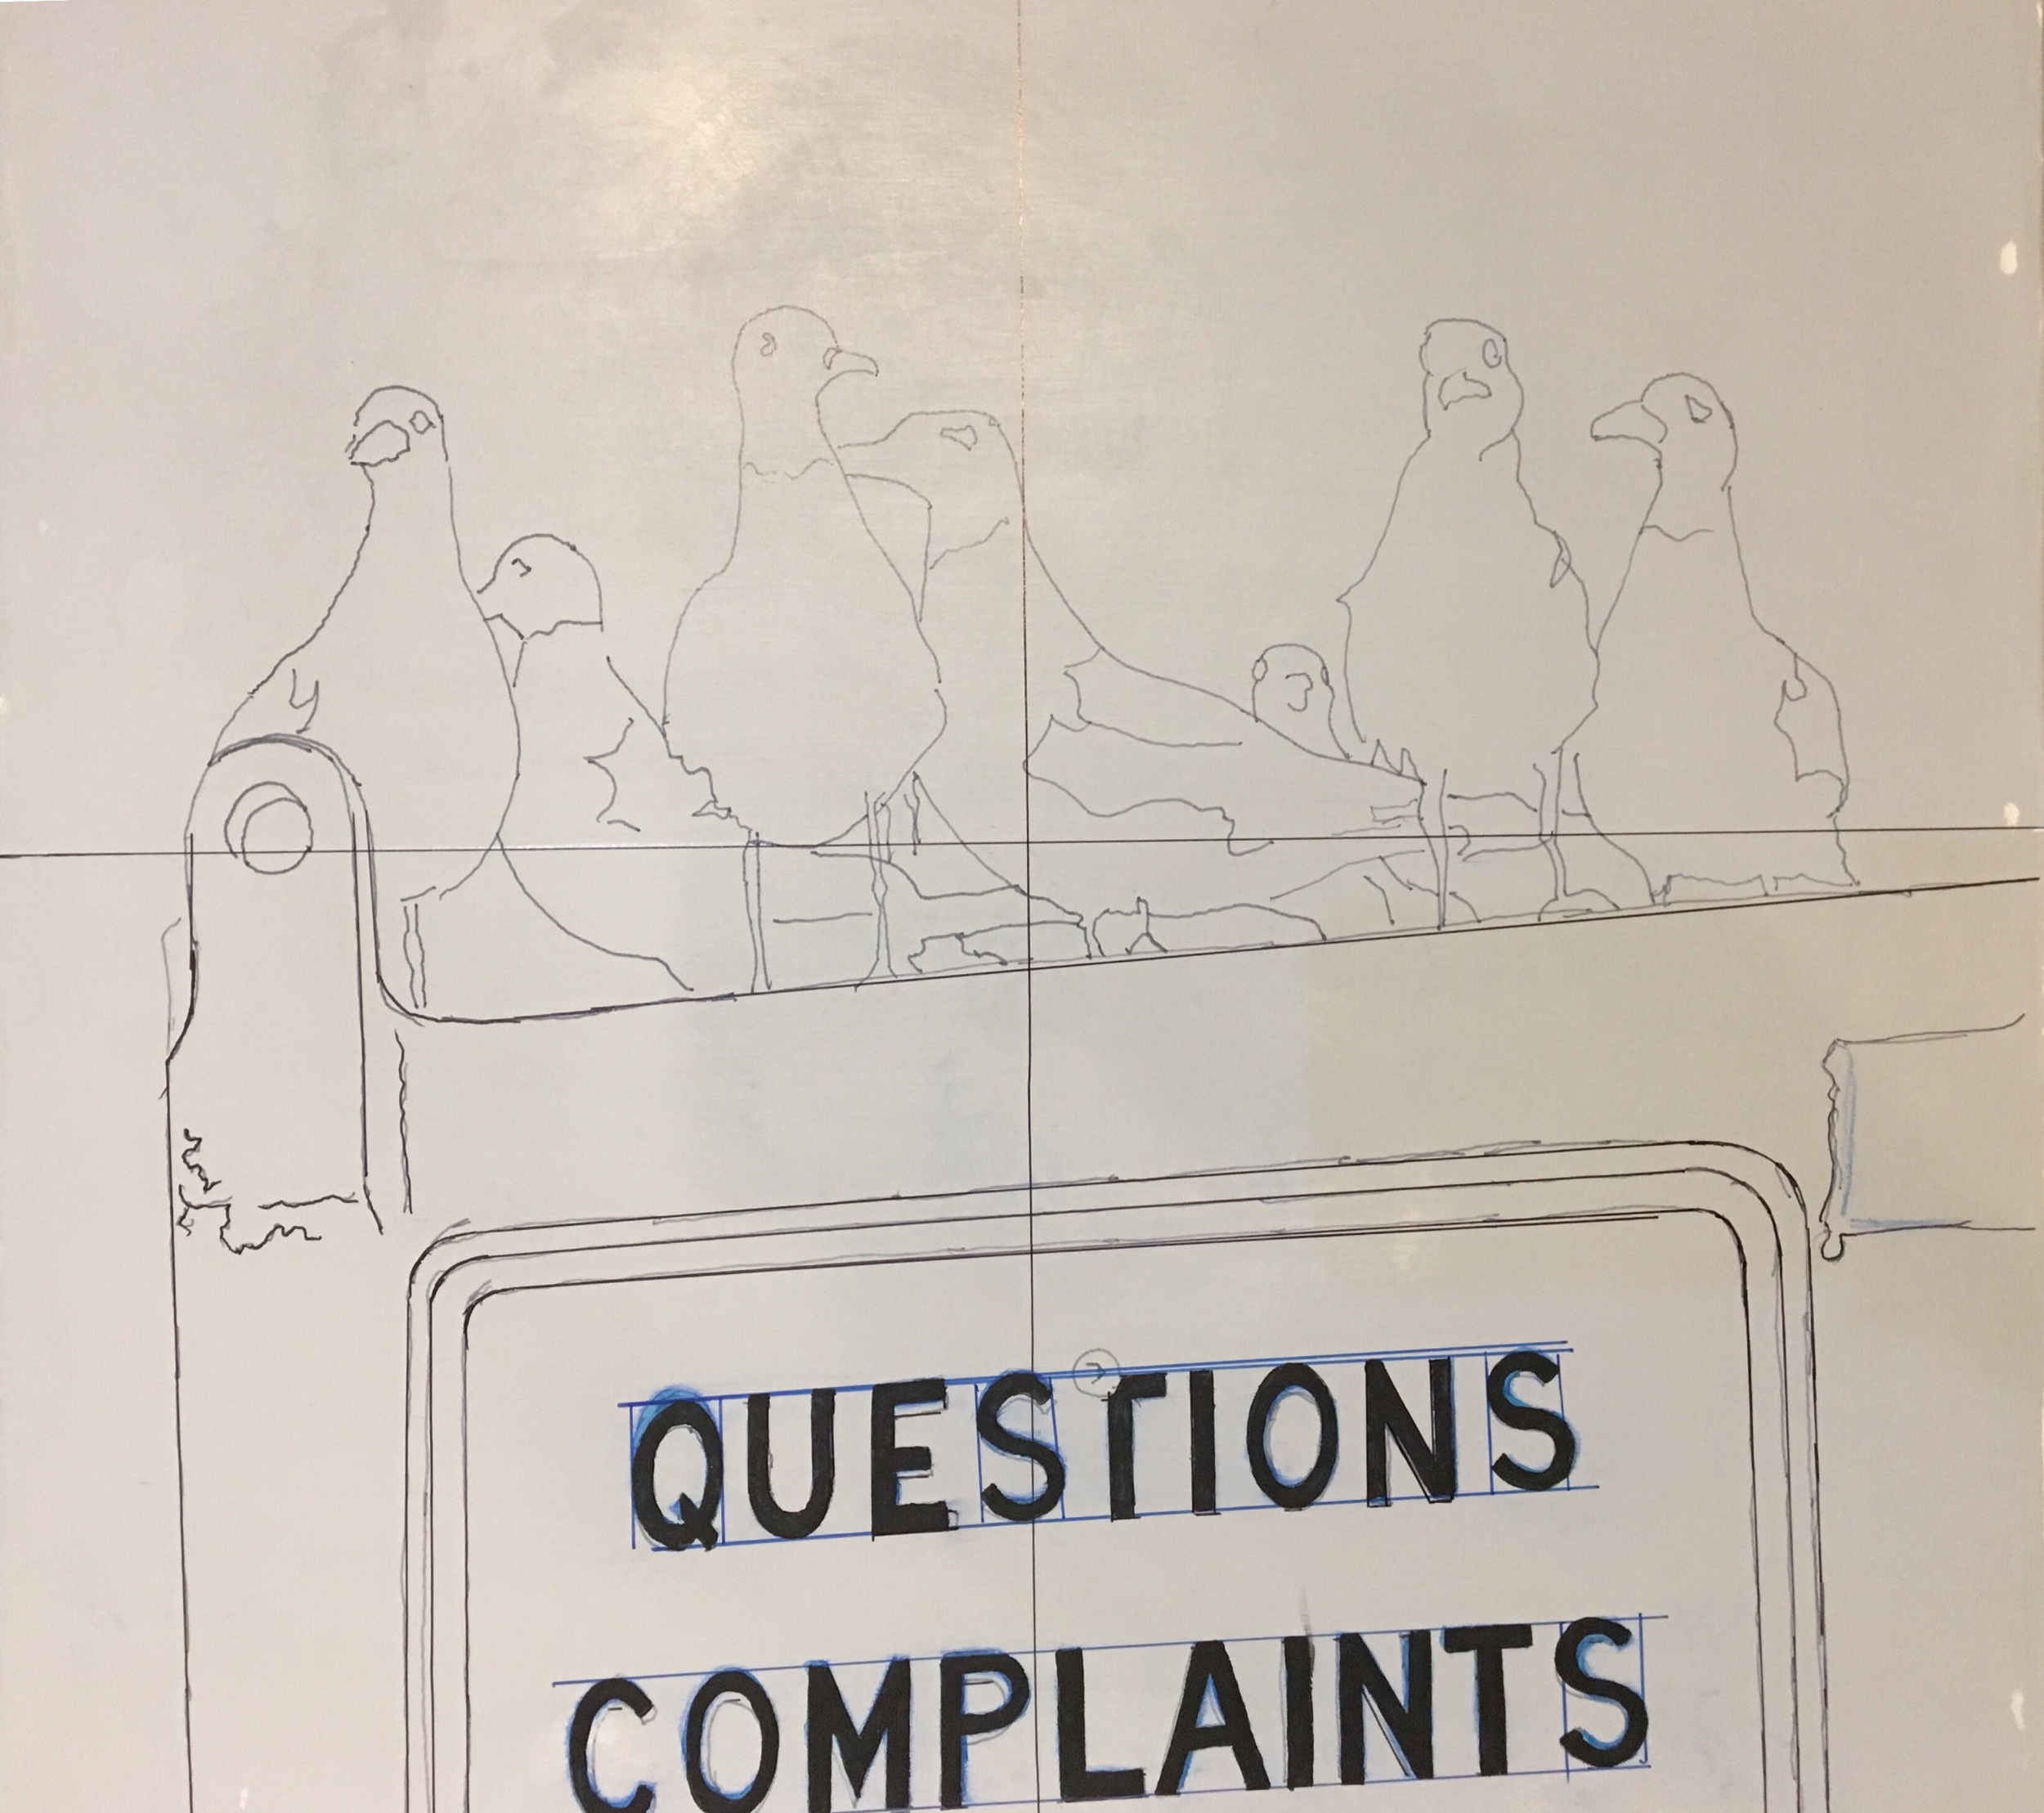 Complaint Department: - Session 1: Transferred my sketch to the canvas